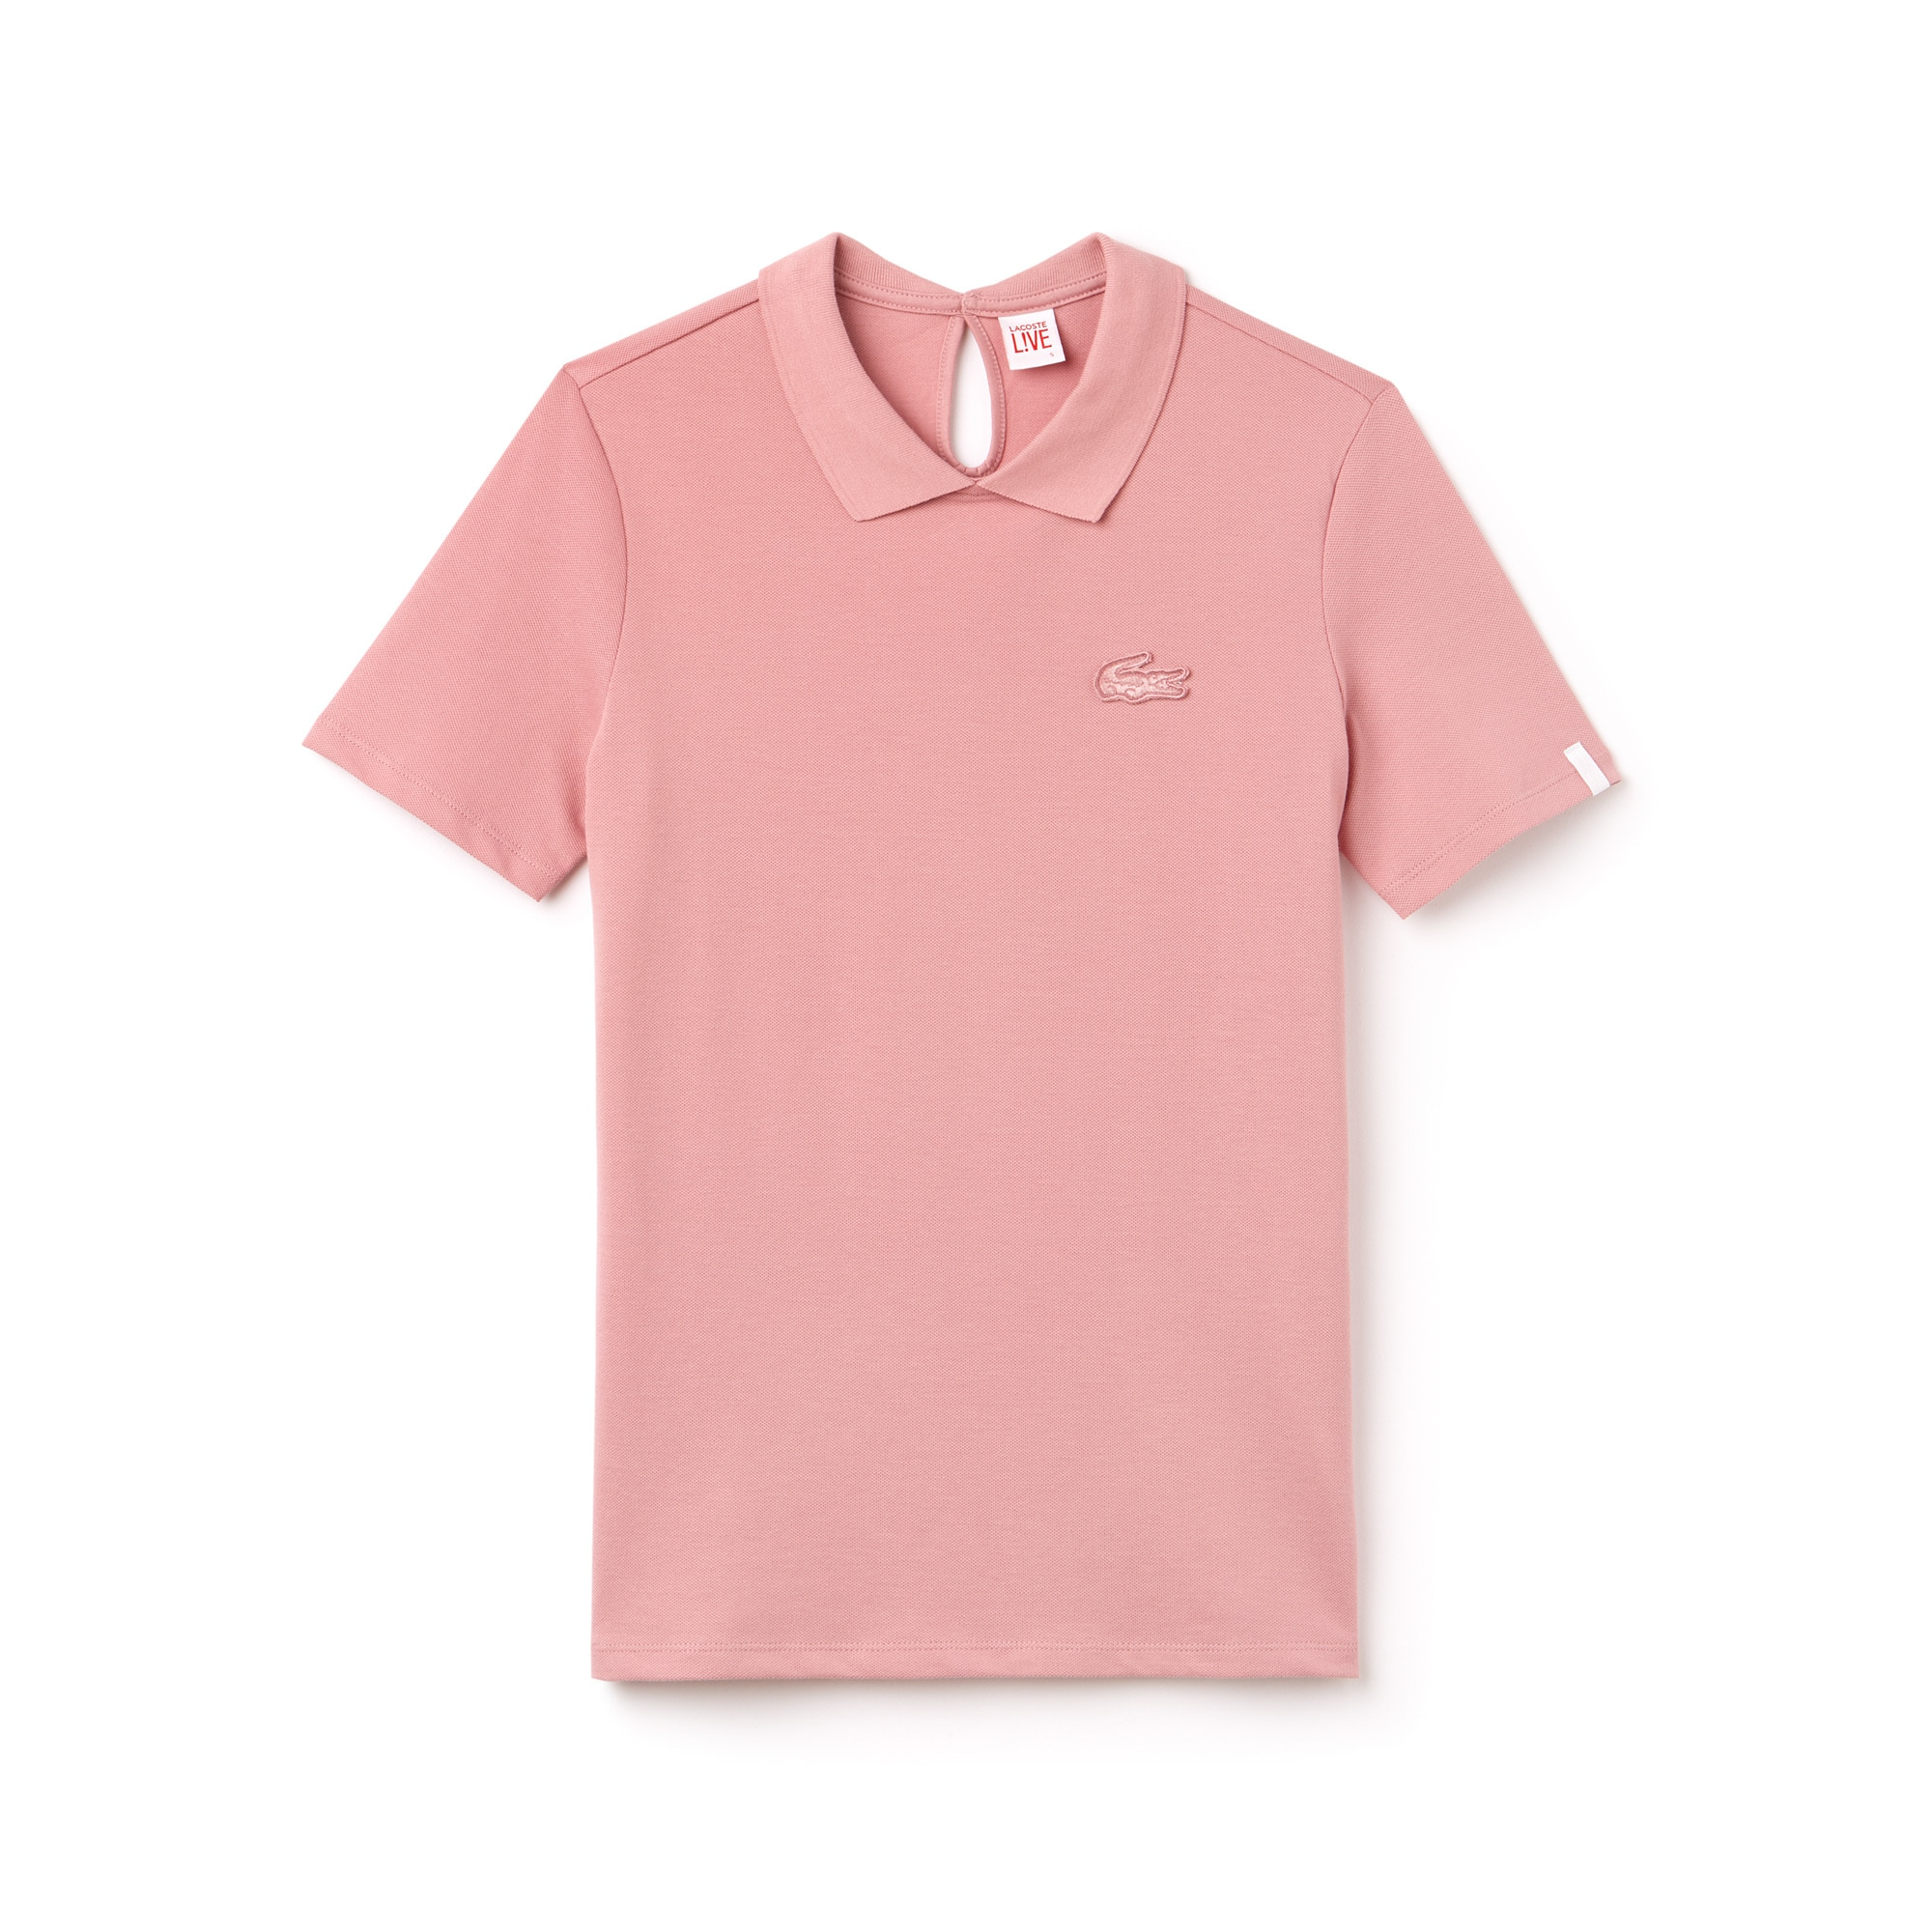 Women's Lacoste LIVE Teardrop Opening Mini Piqué Polo Shirt